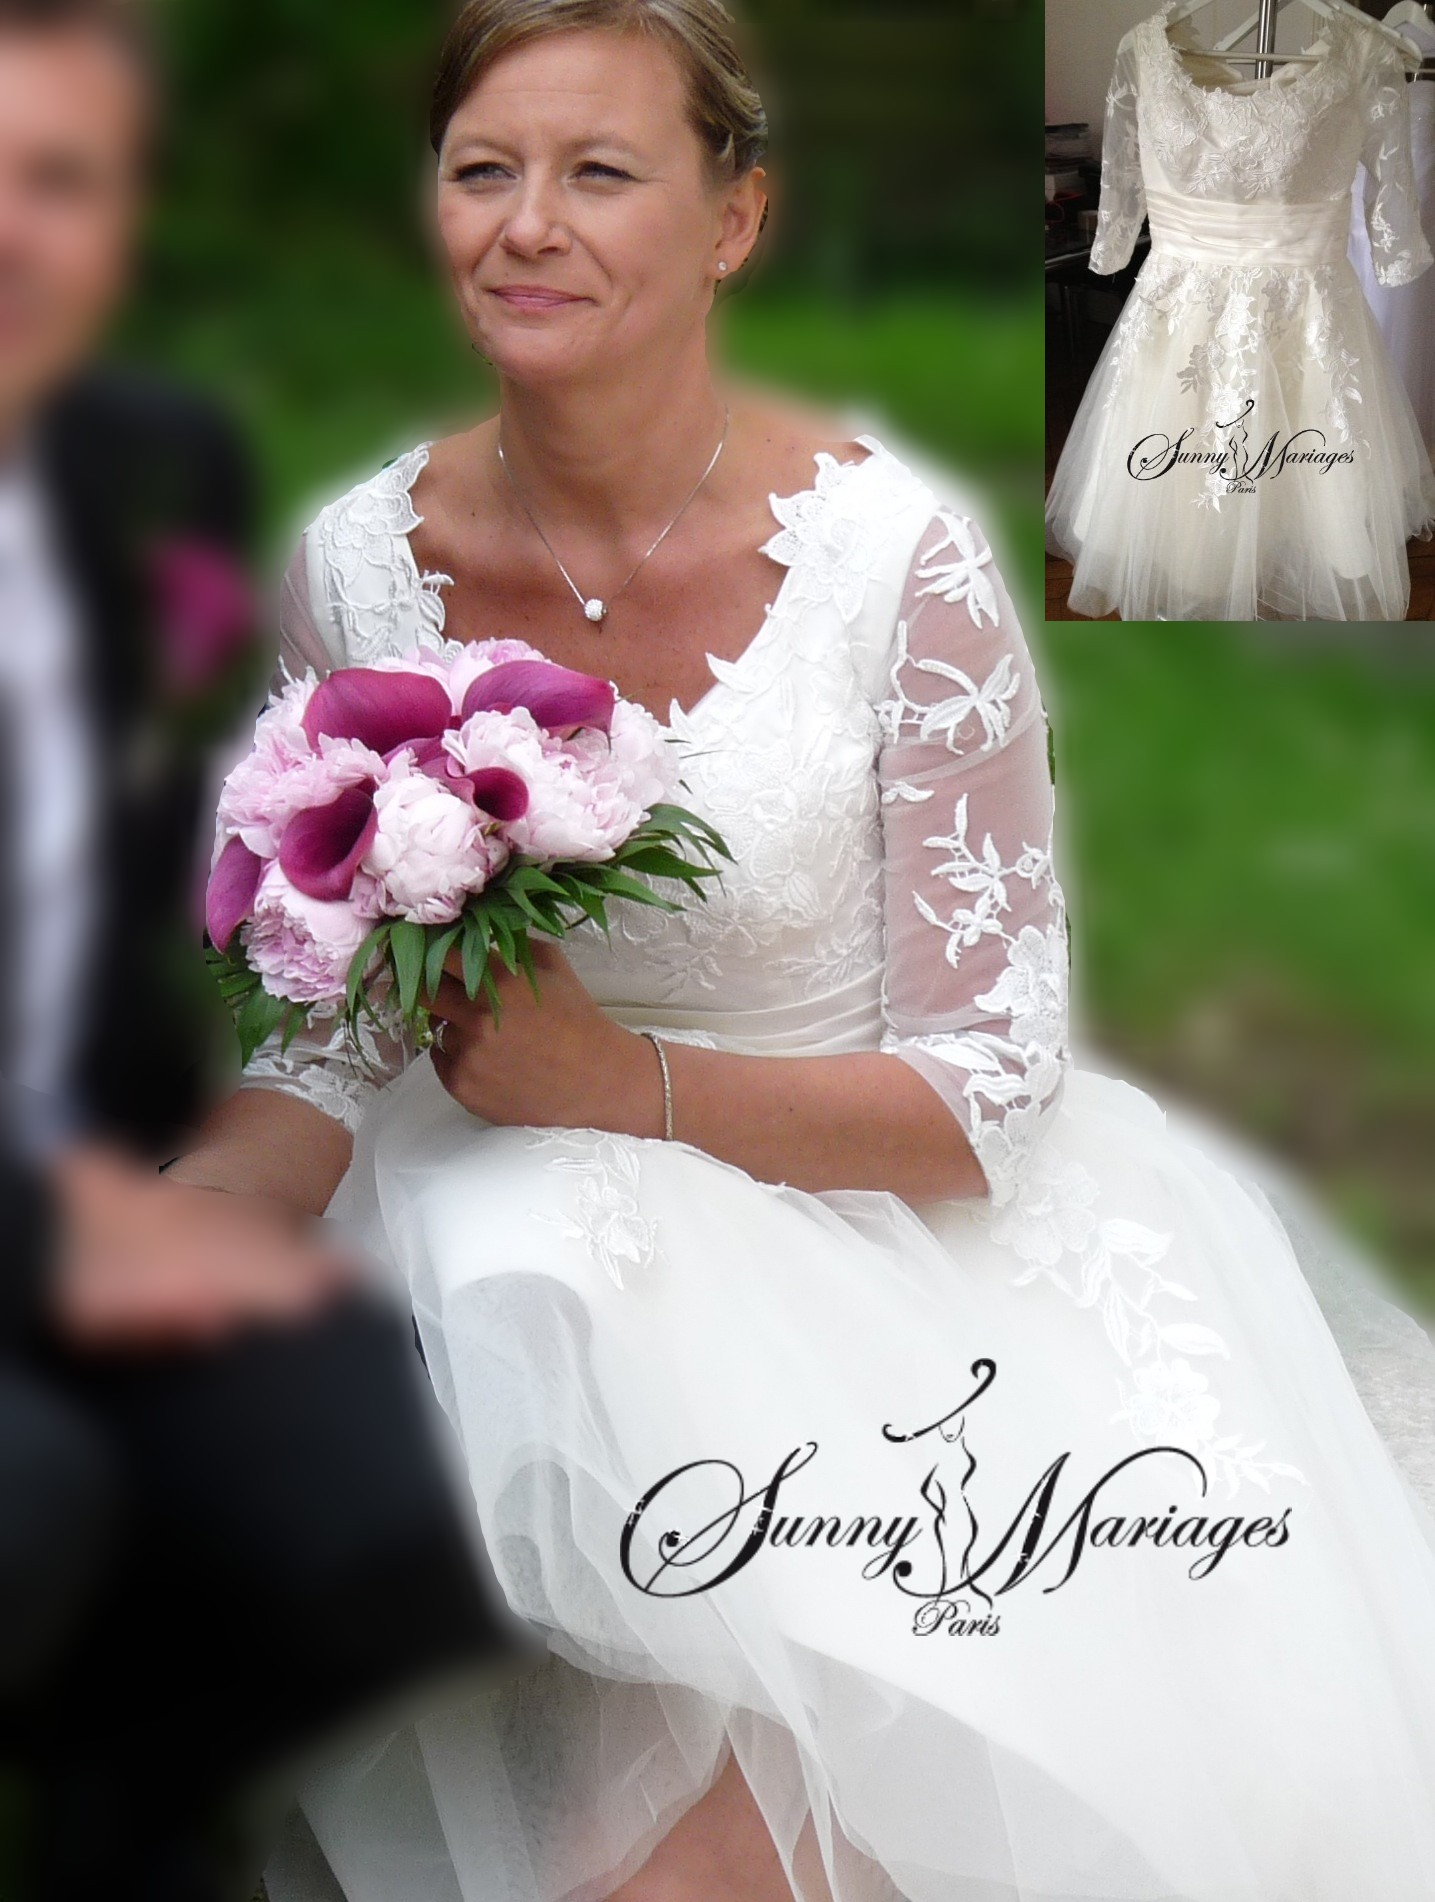 Tenue originale pour mariage fashion designs - Photo de mariage originale ...